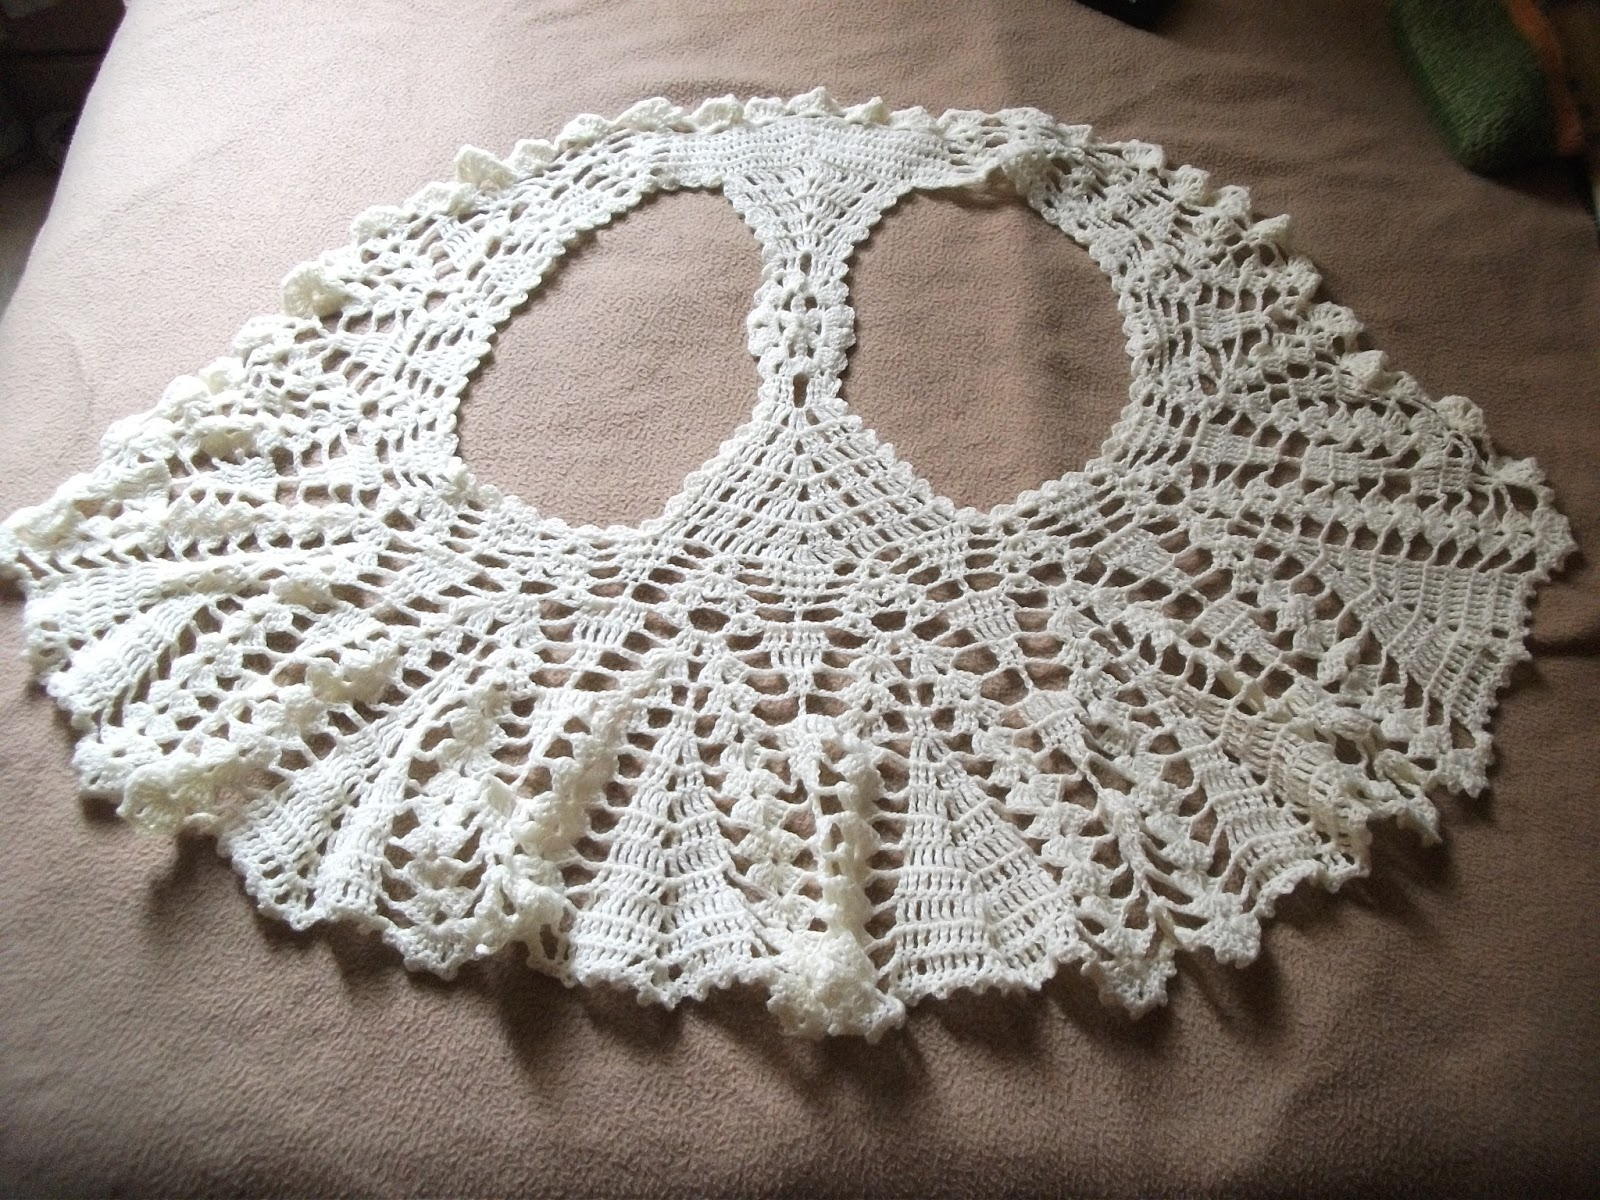 Download image tejidos de chalecos en crochet pc android iphone and